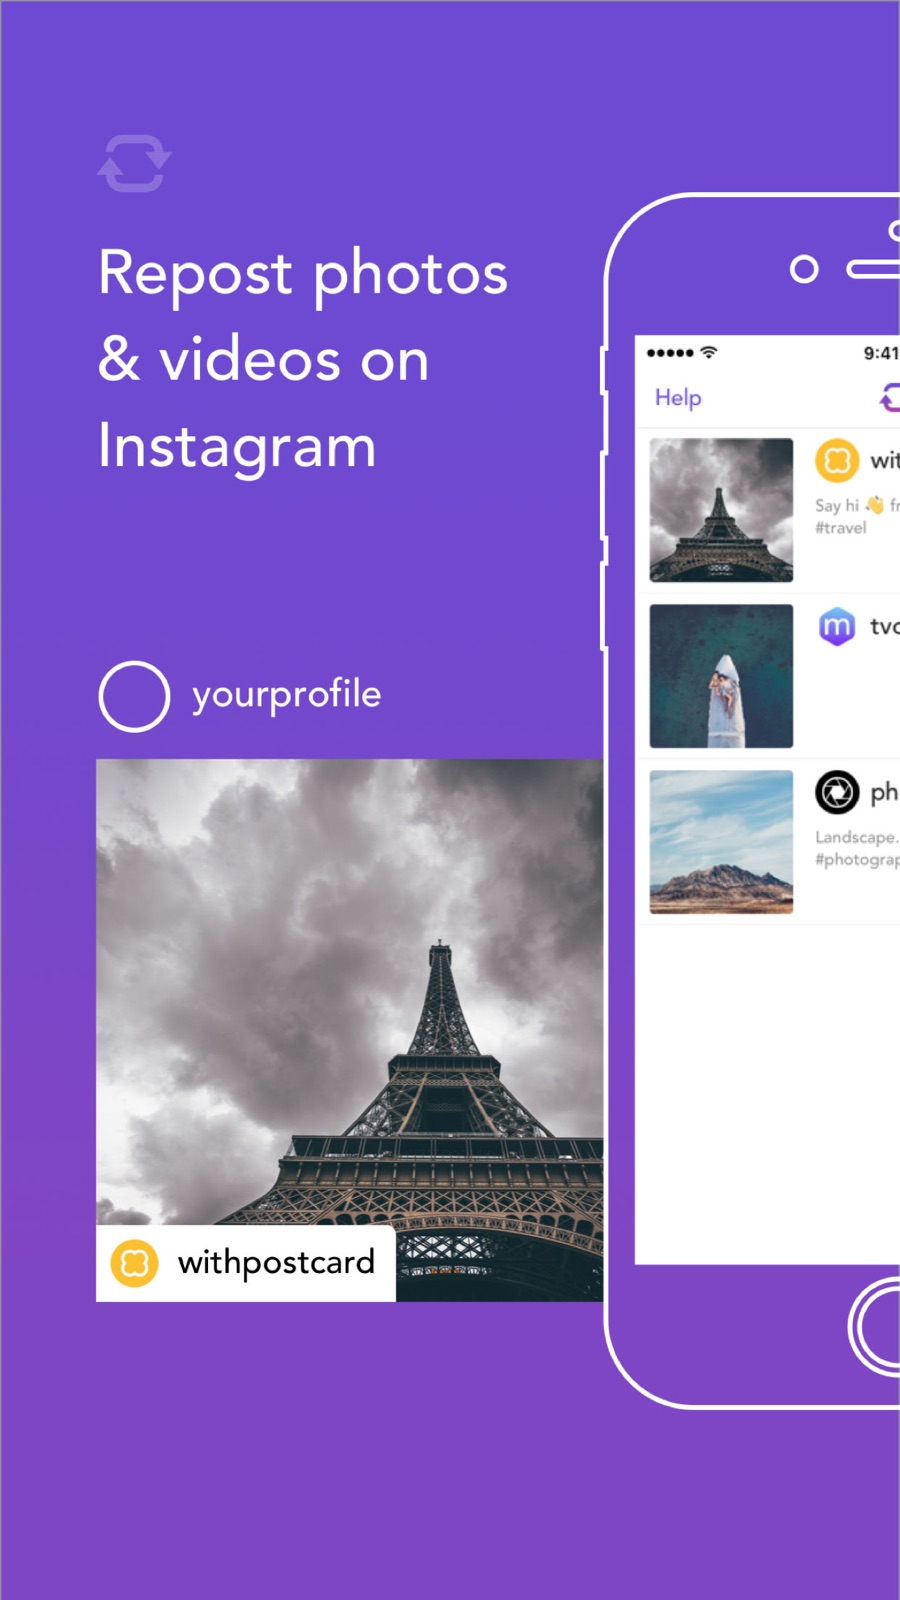 Example of Design for Photo & Video App , App Store Screenshot by Repost